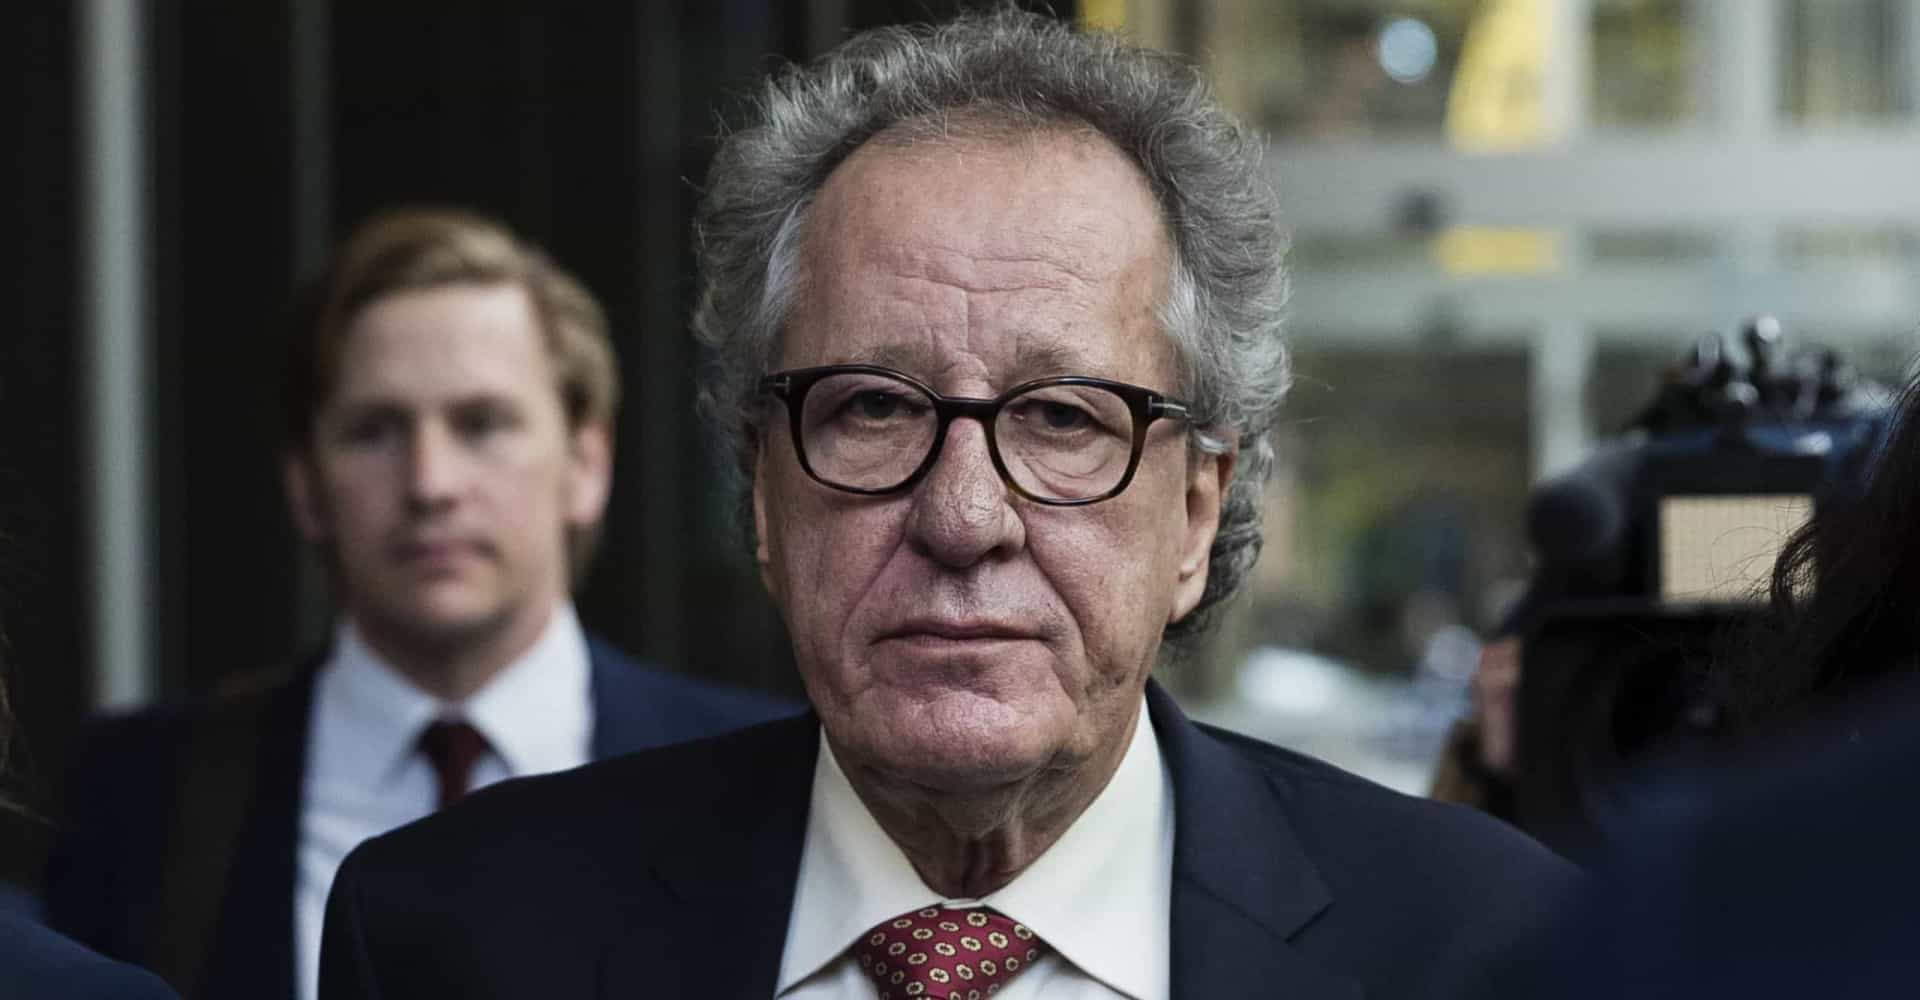 Geoffrey Rush, Donald Trump, and more stars who sued for defamation